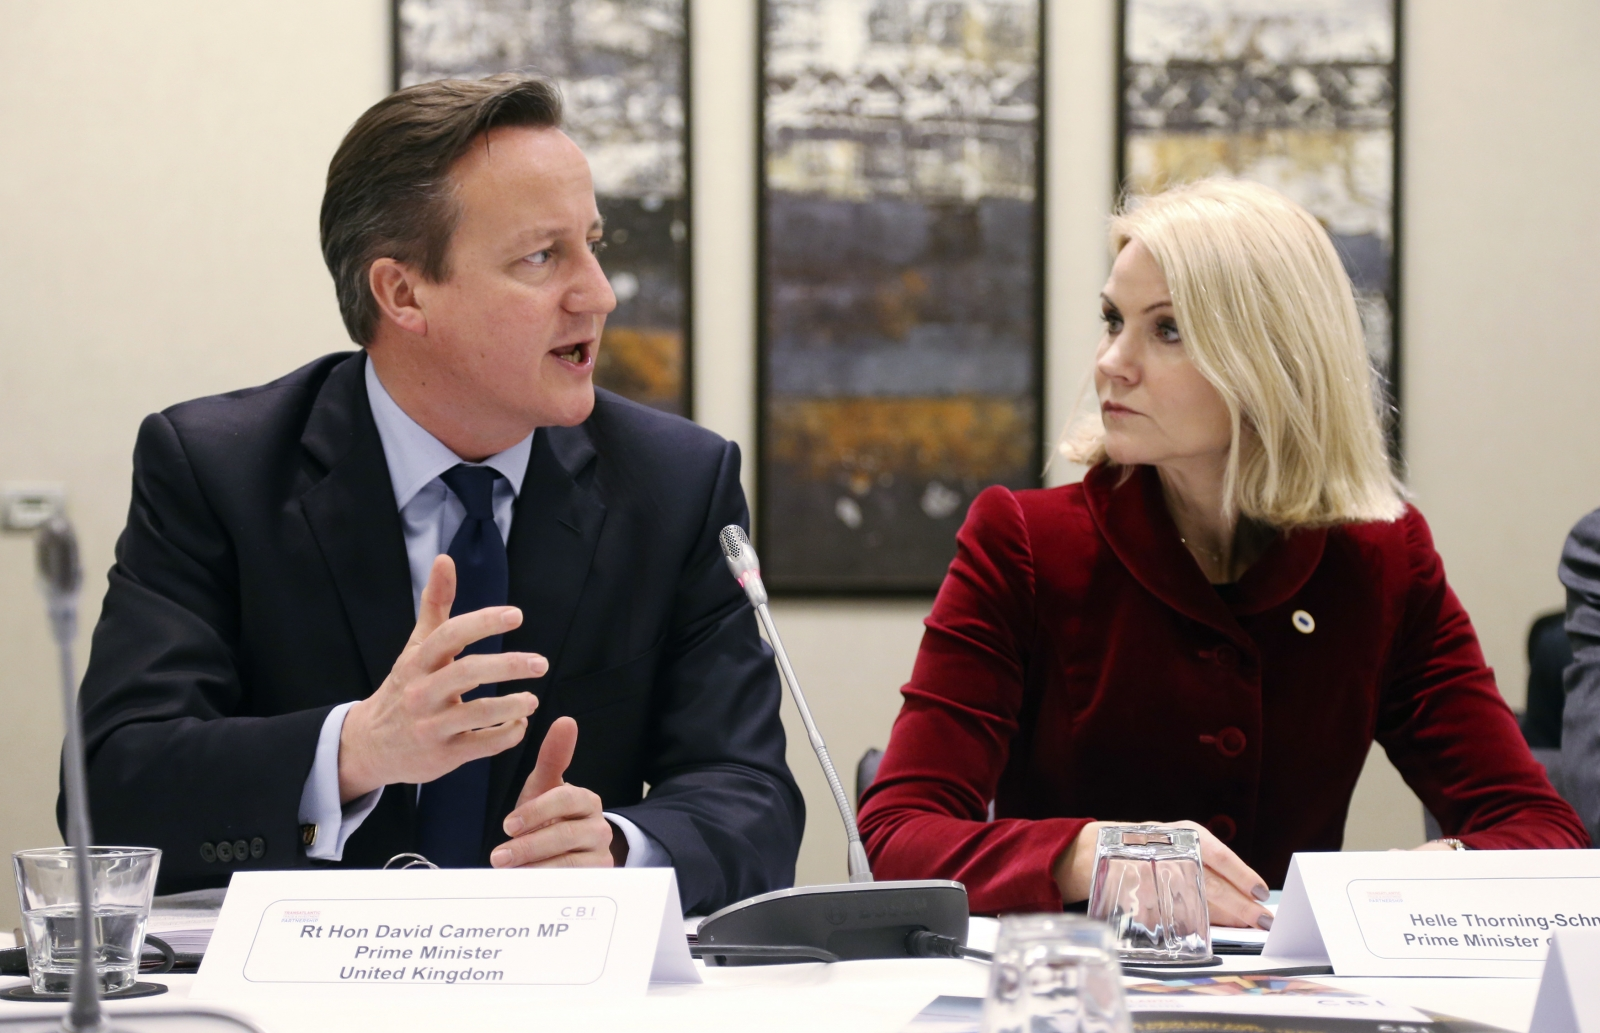 David Cameron and Minister Helle Thorning-Schmidt